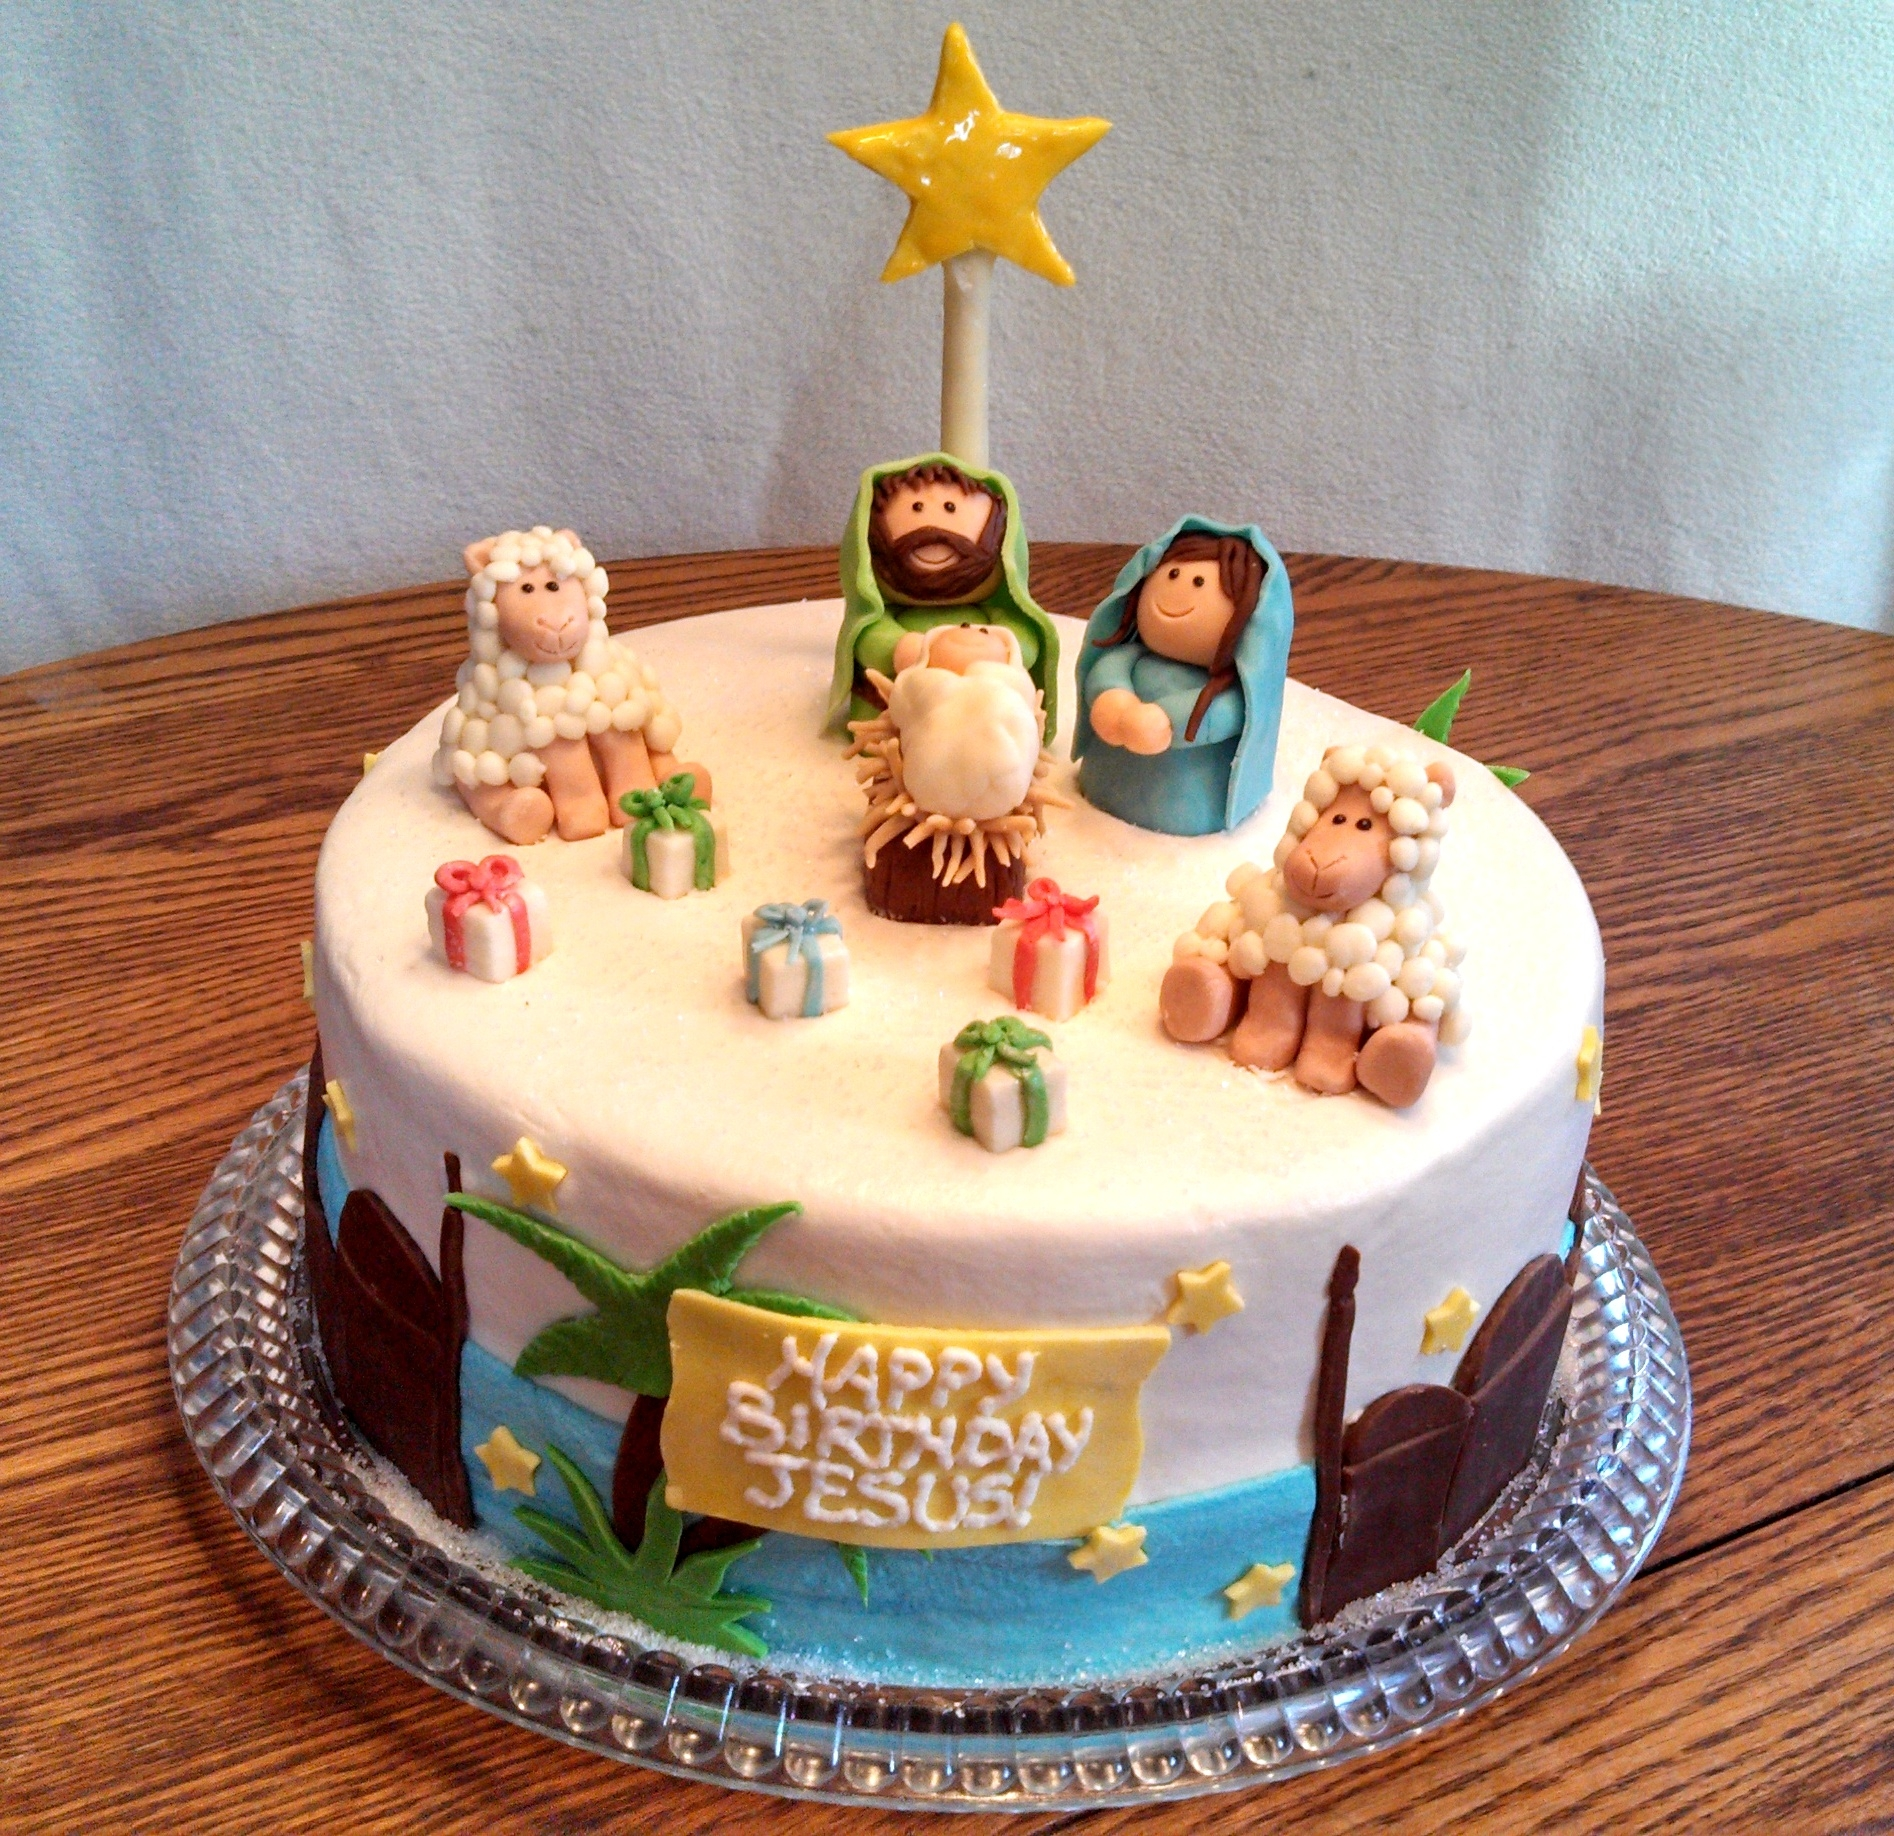 A Birthday Cake For Jesus 10in Round 2 Layer All Buttercream With Candy Clay Nativity And Decorations Edible Translated From Two Tier